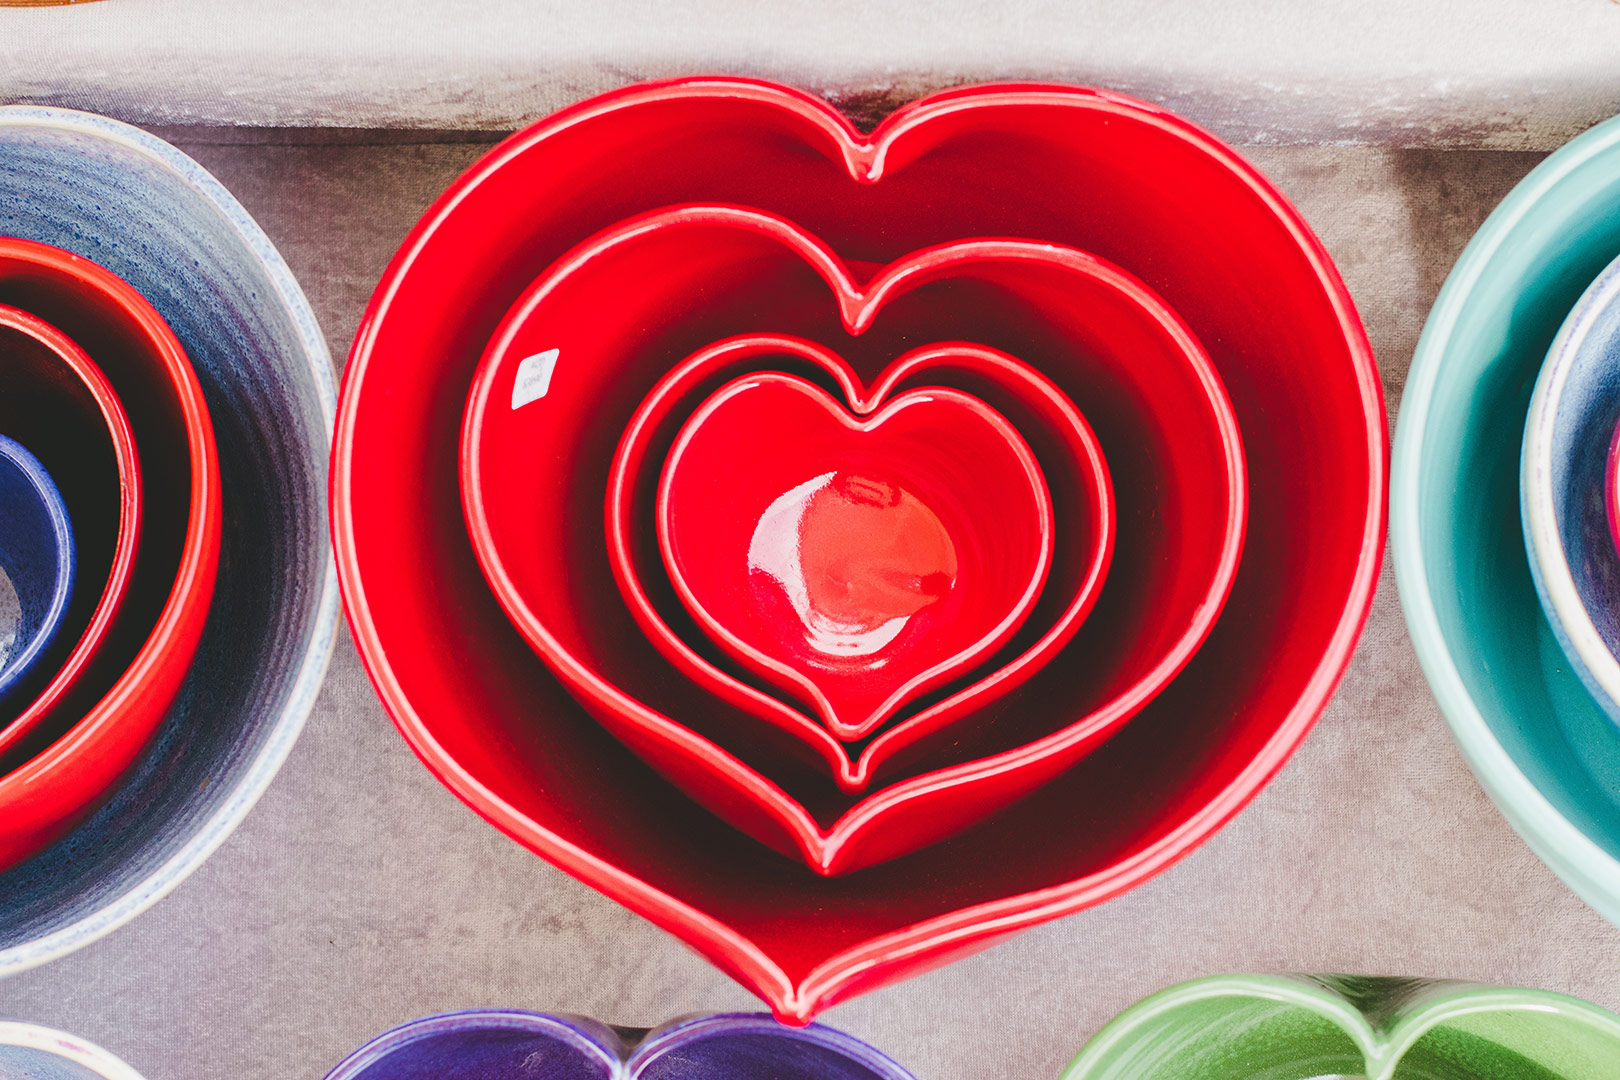 Red heart shaped bowls